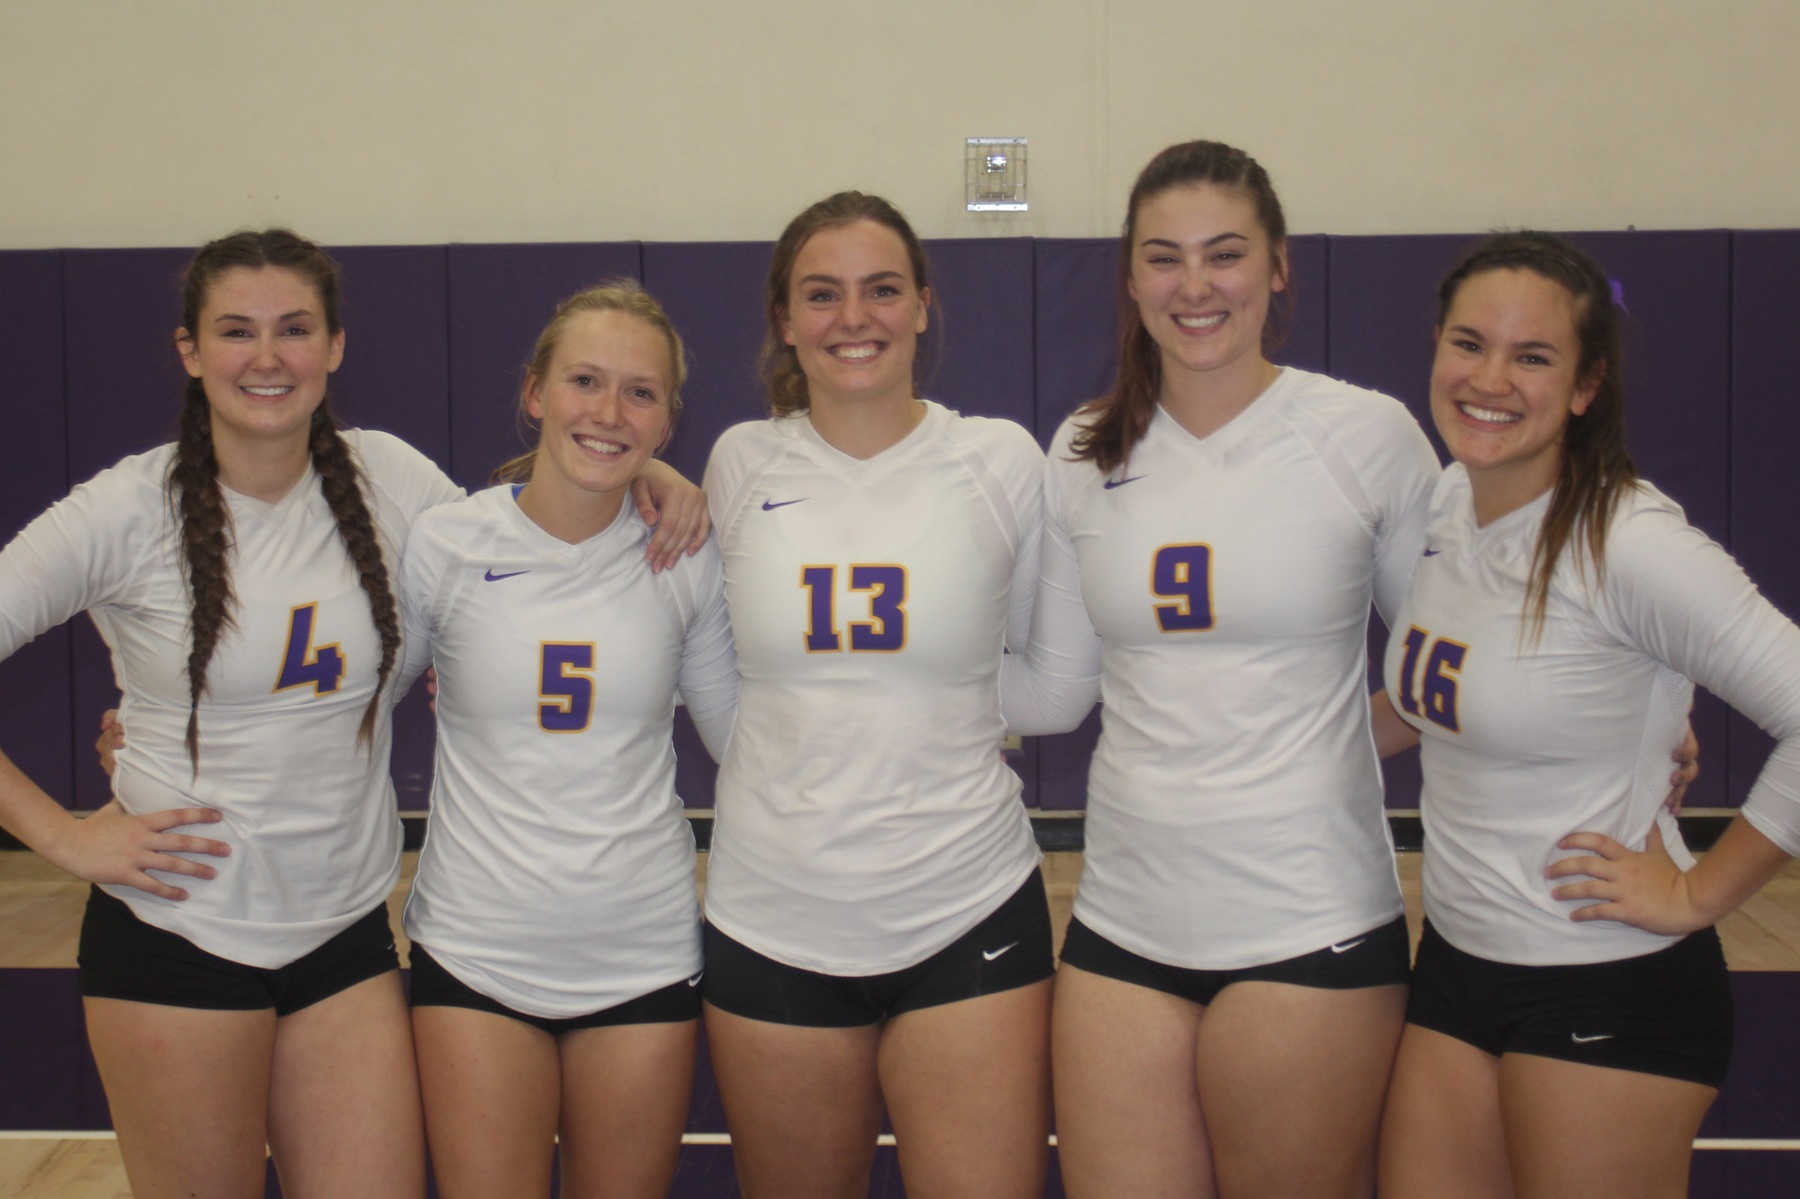 Regals' seniors from left to right: Amanda Roberts, CJ O'Brien, Paris Dosch, Hannah Cantrell and Steph Rolfson.